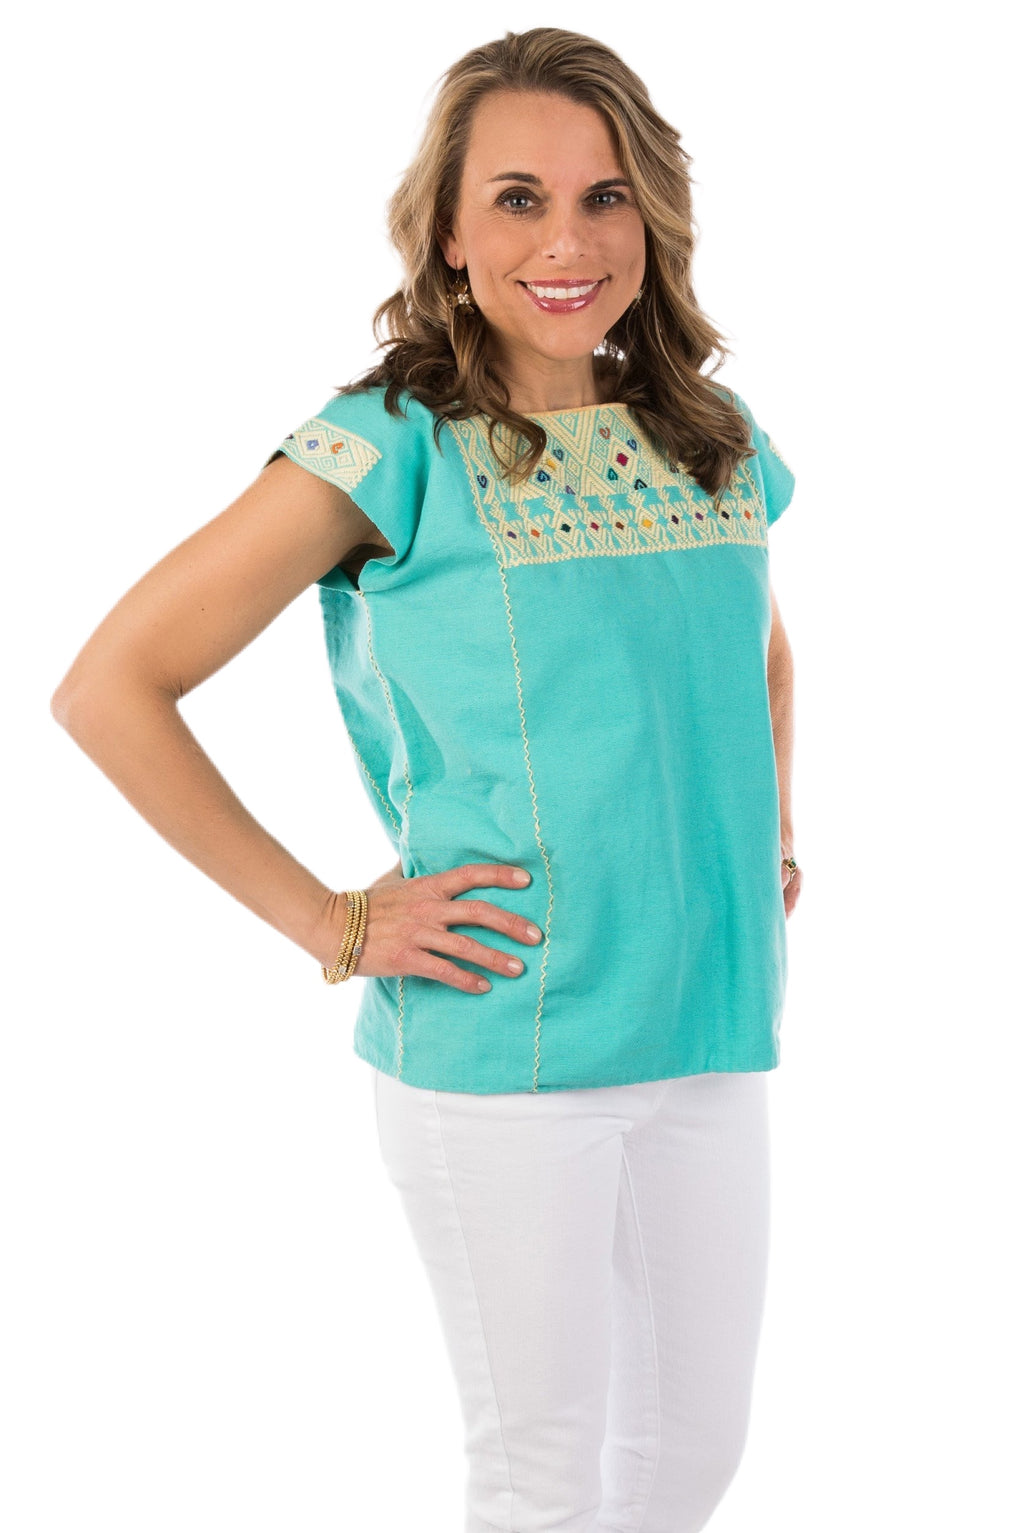 San Andres Mexican Blouse - Turquoise